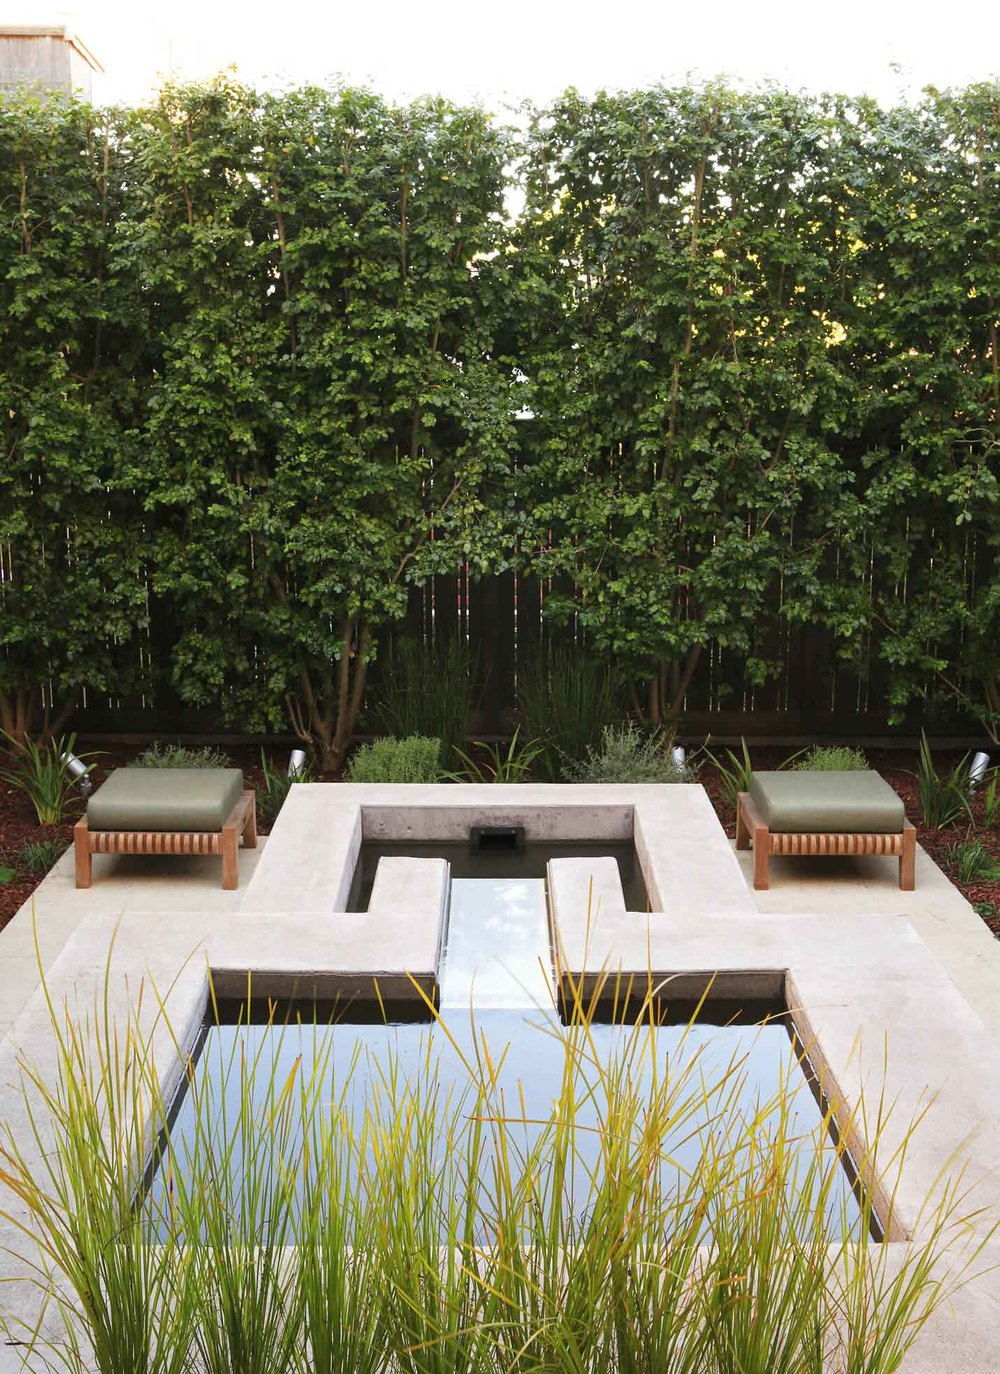 Garden Vignette by Arterra Landscape Architects Photo by Michele Lee Willson